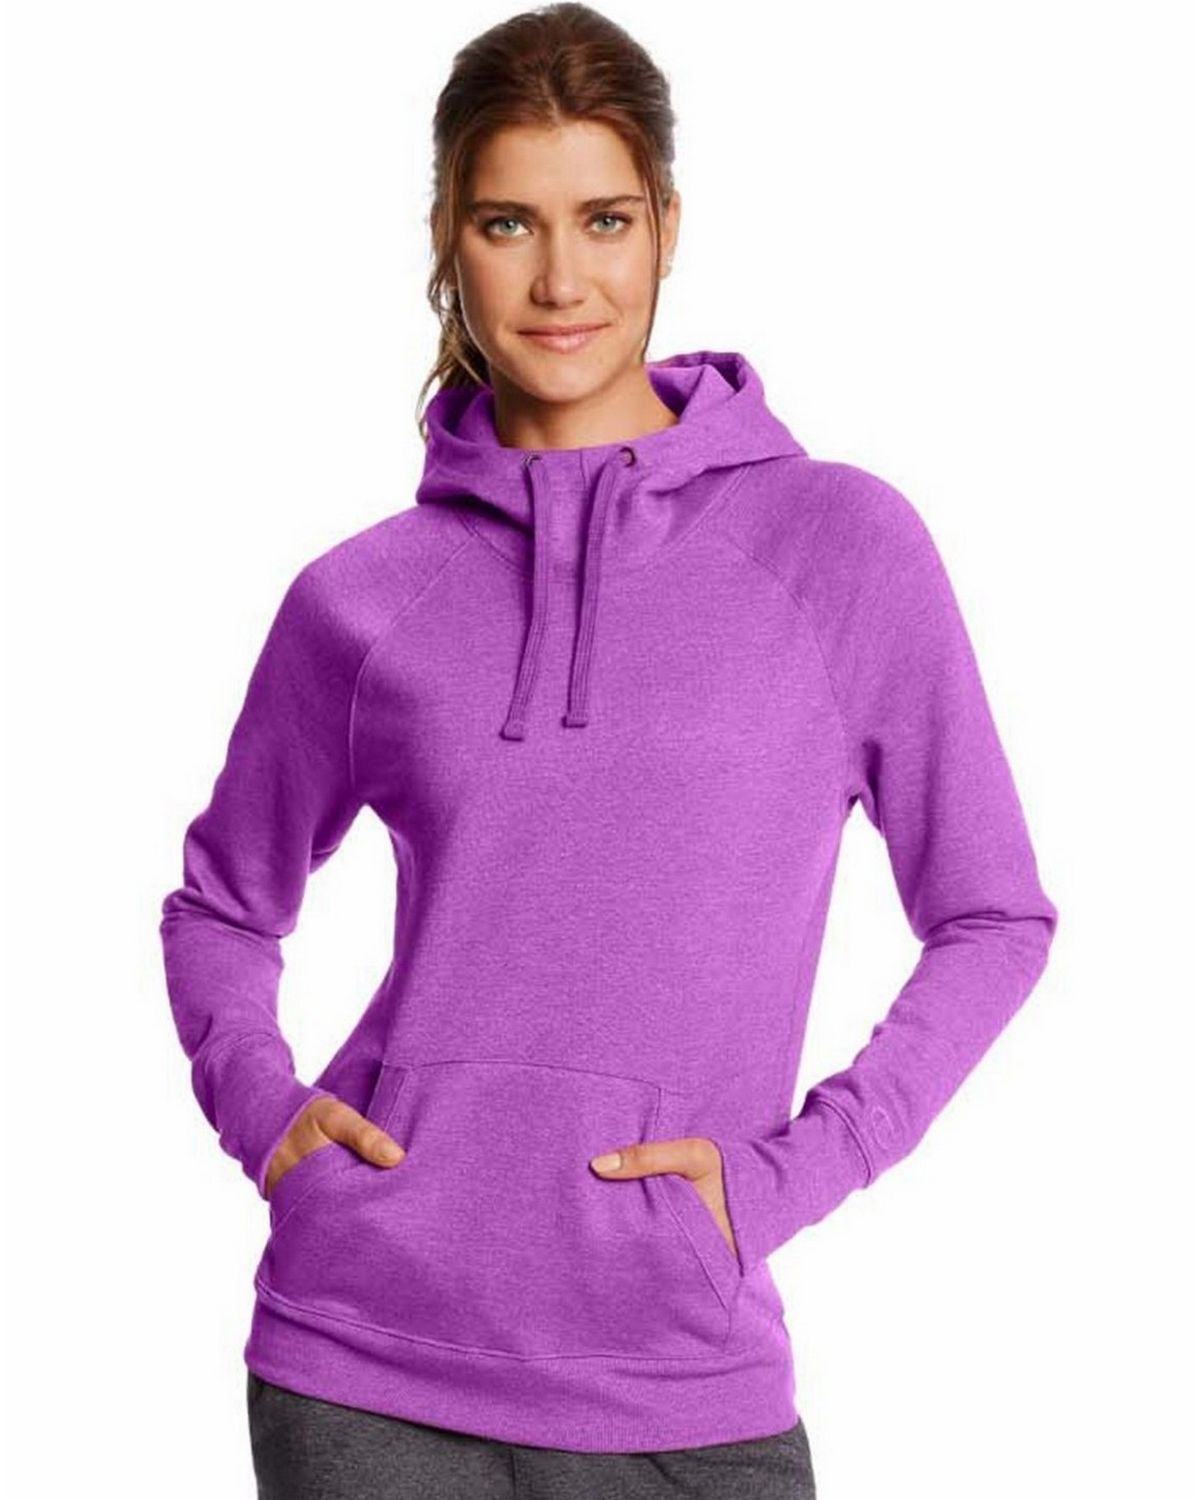 Champion Women's Fleece Pullover Hoodie, Space Purple Heather, Medium W0934